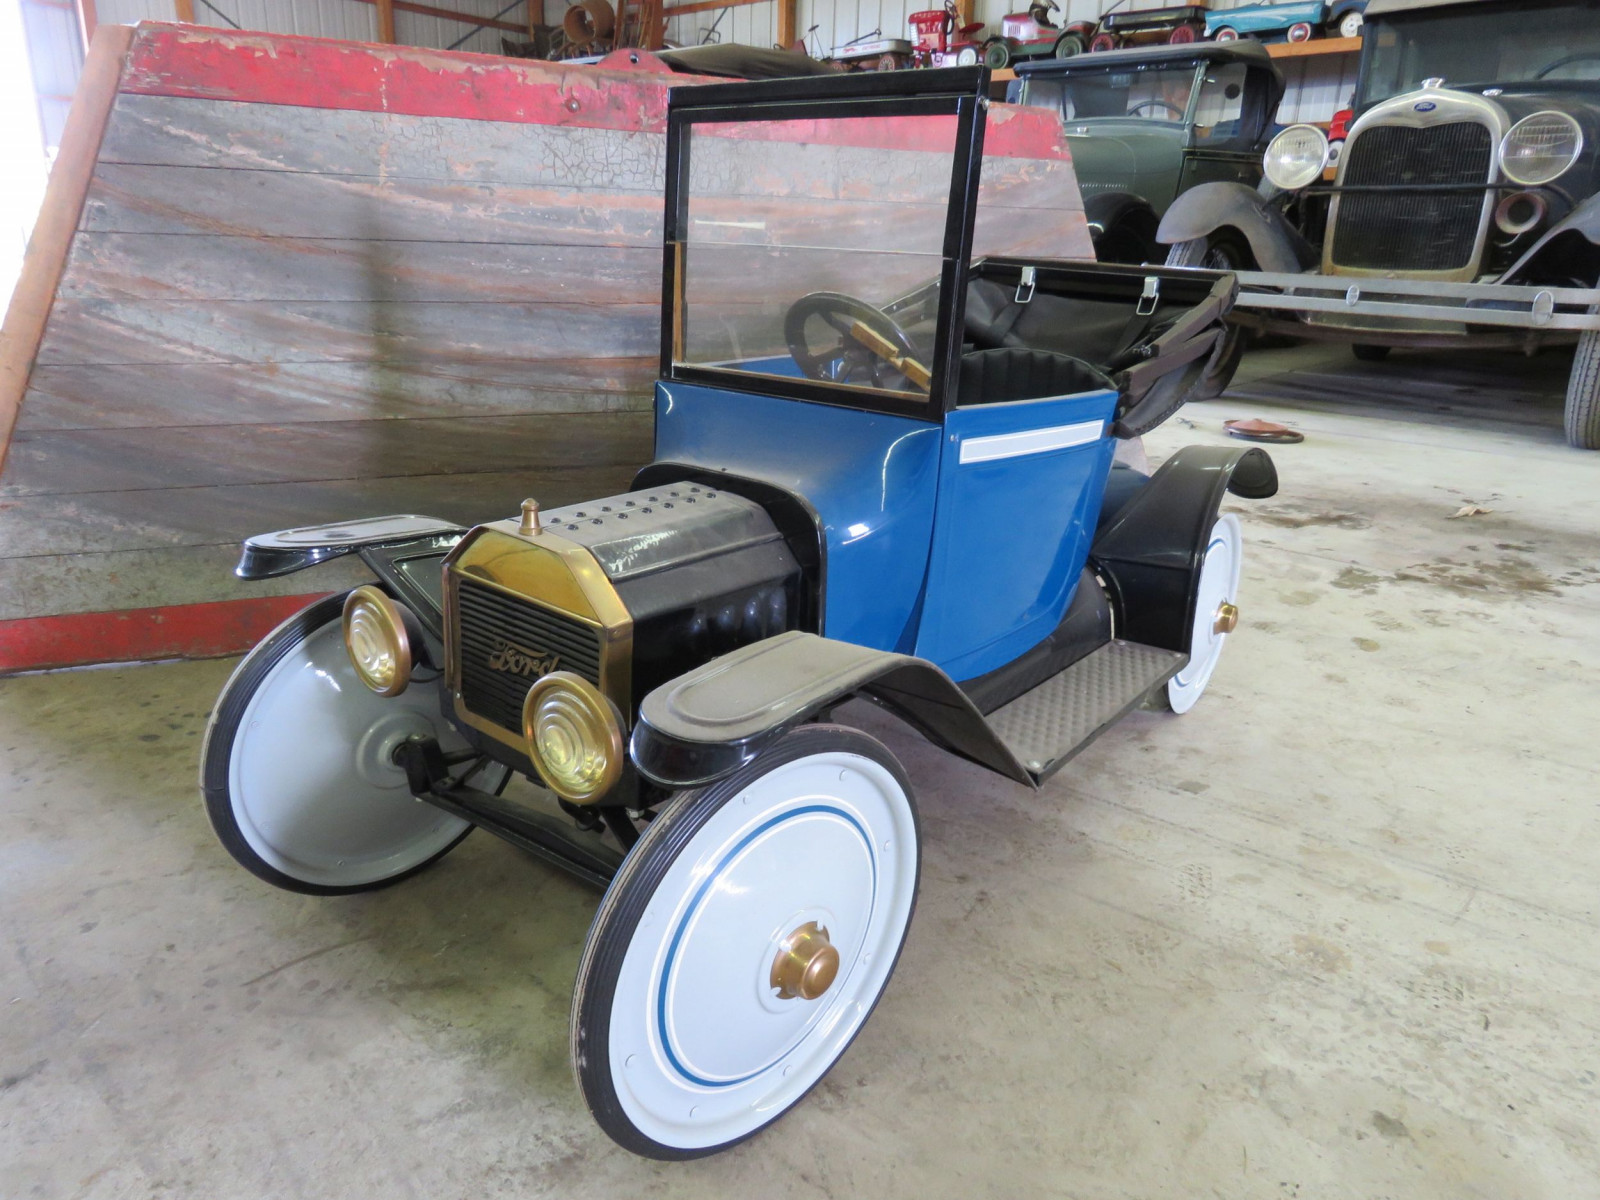 Ford Model T Roadster Pedal Car - Image 2